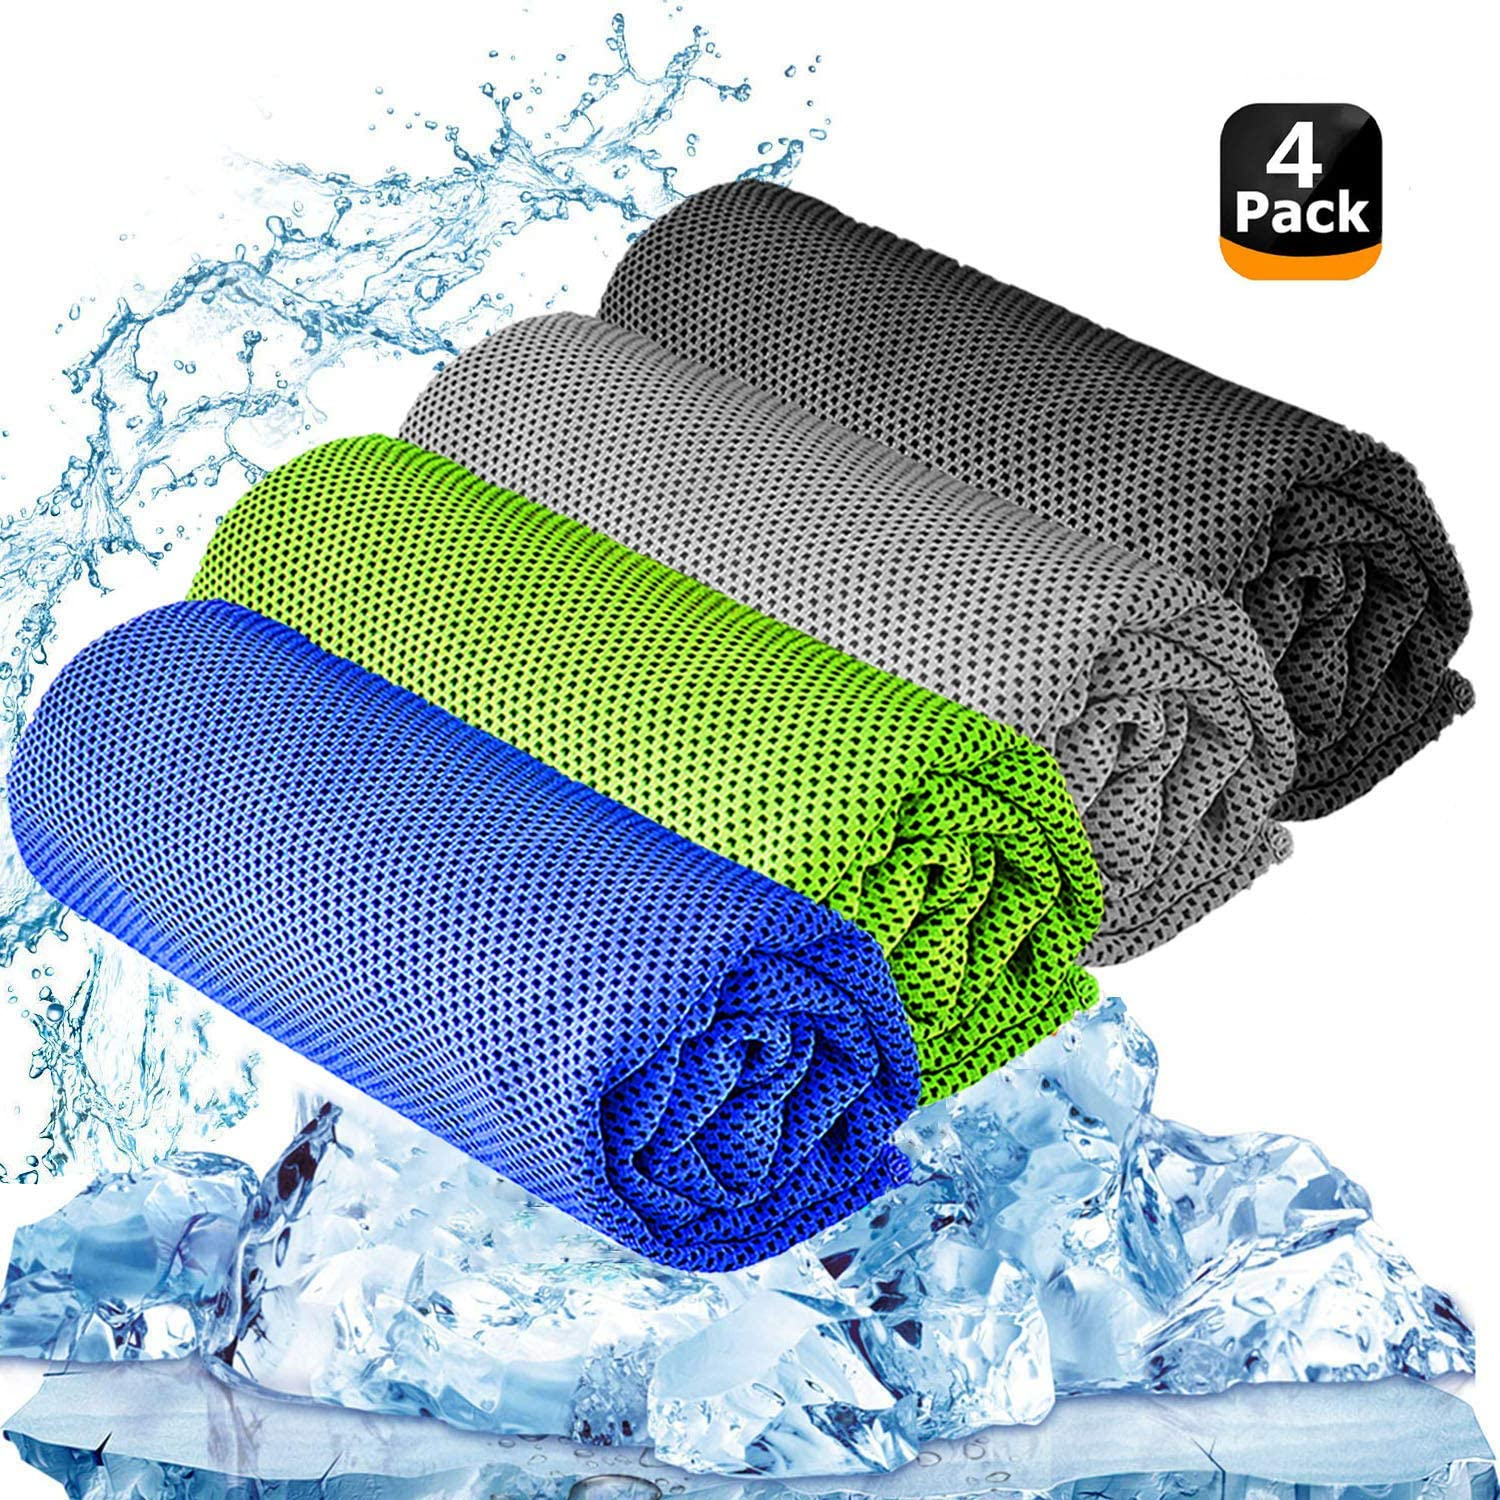 "YQXCC Cooling Towel 3 Pcs (47""x12"") Microfiber Towel For Instant Cooling Relief, Cool Cold Towel for Yoga Golf Travel Gym Sport Camping Football & Outdoor Sports (Dark Blue/Dark Gray/Light Gray/Green)"